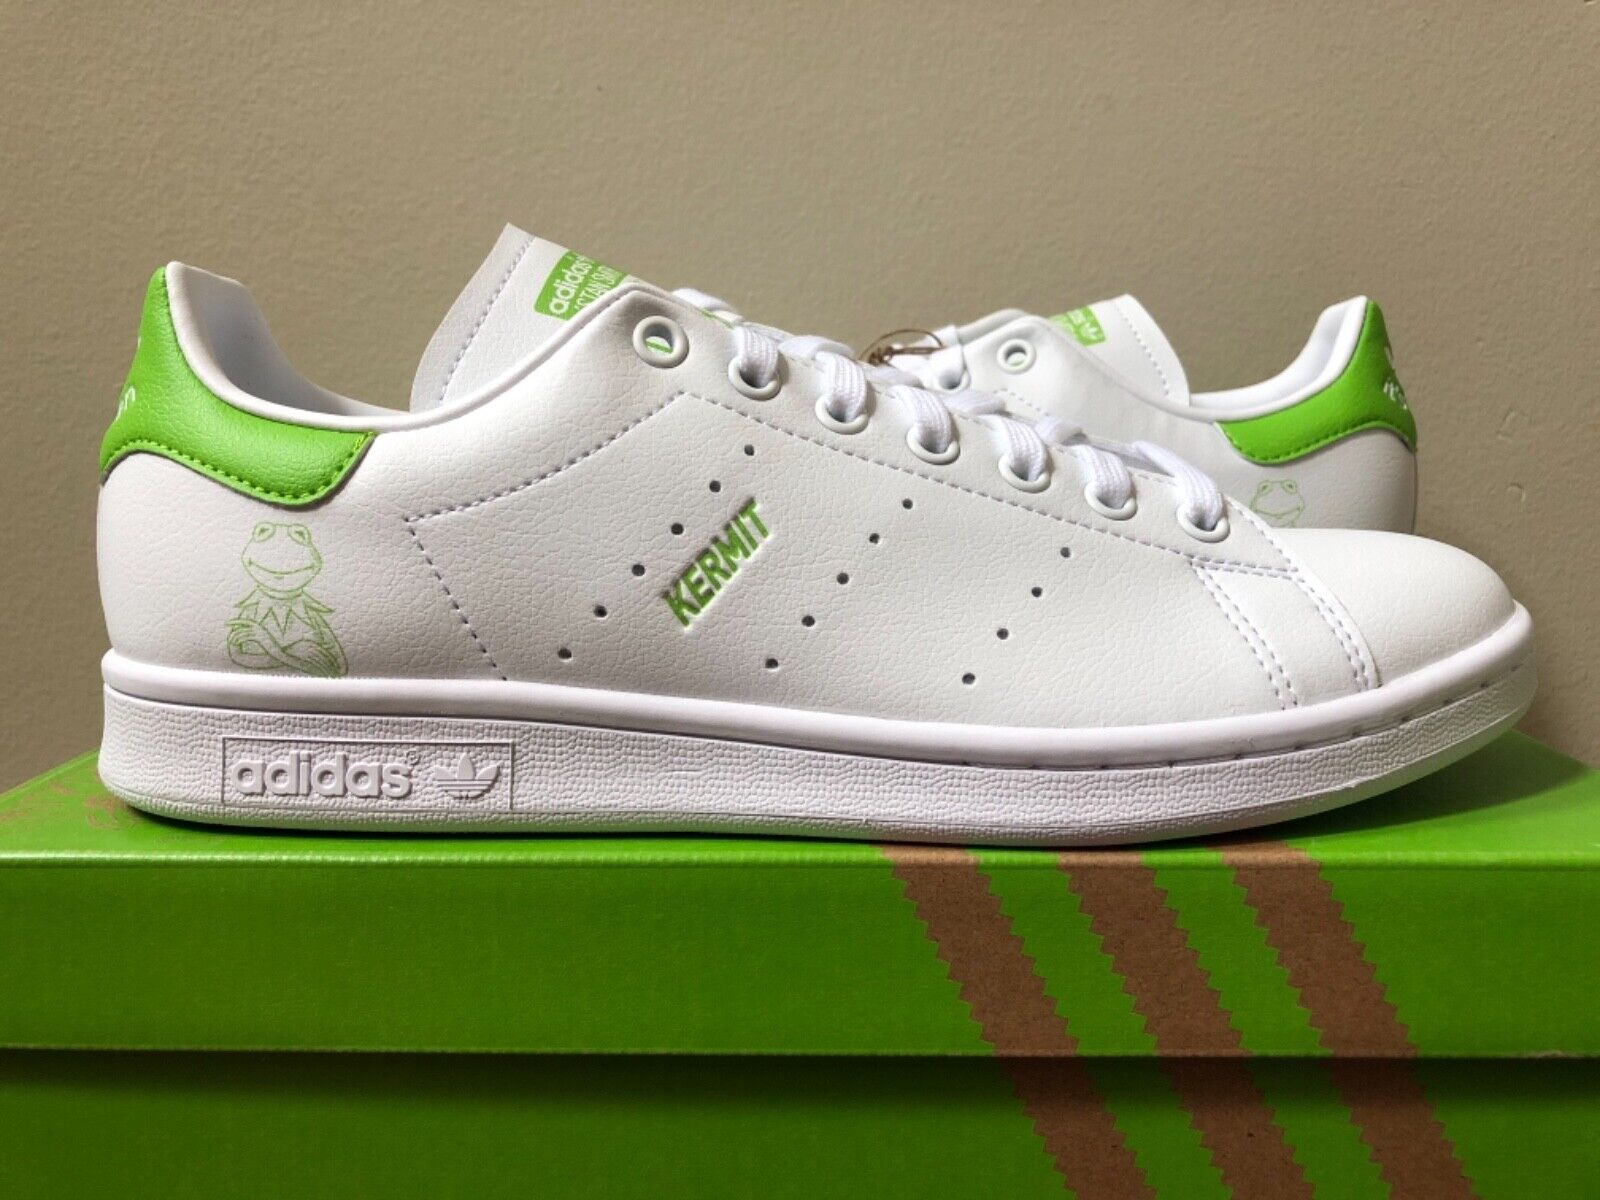 The Muppets x Stan Smith 'Kermit The Frog Allover Print'